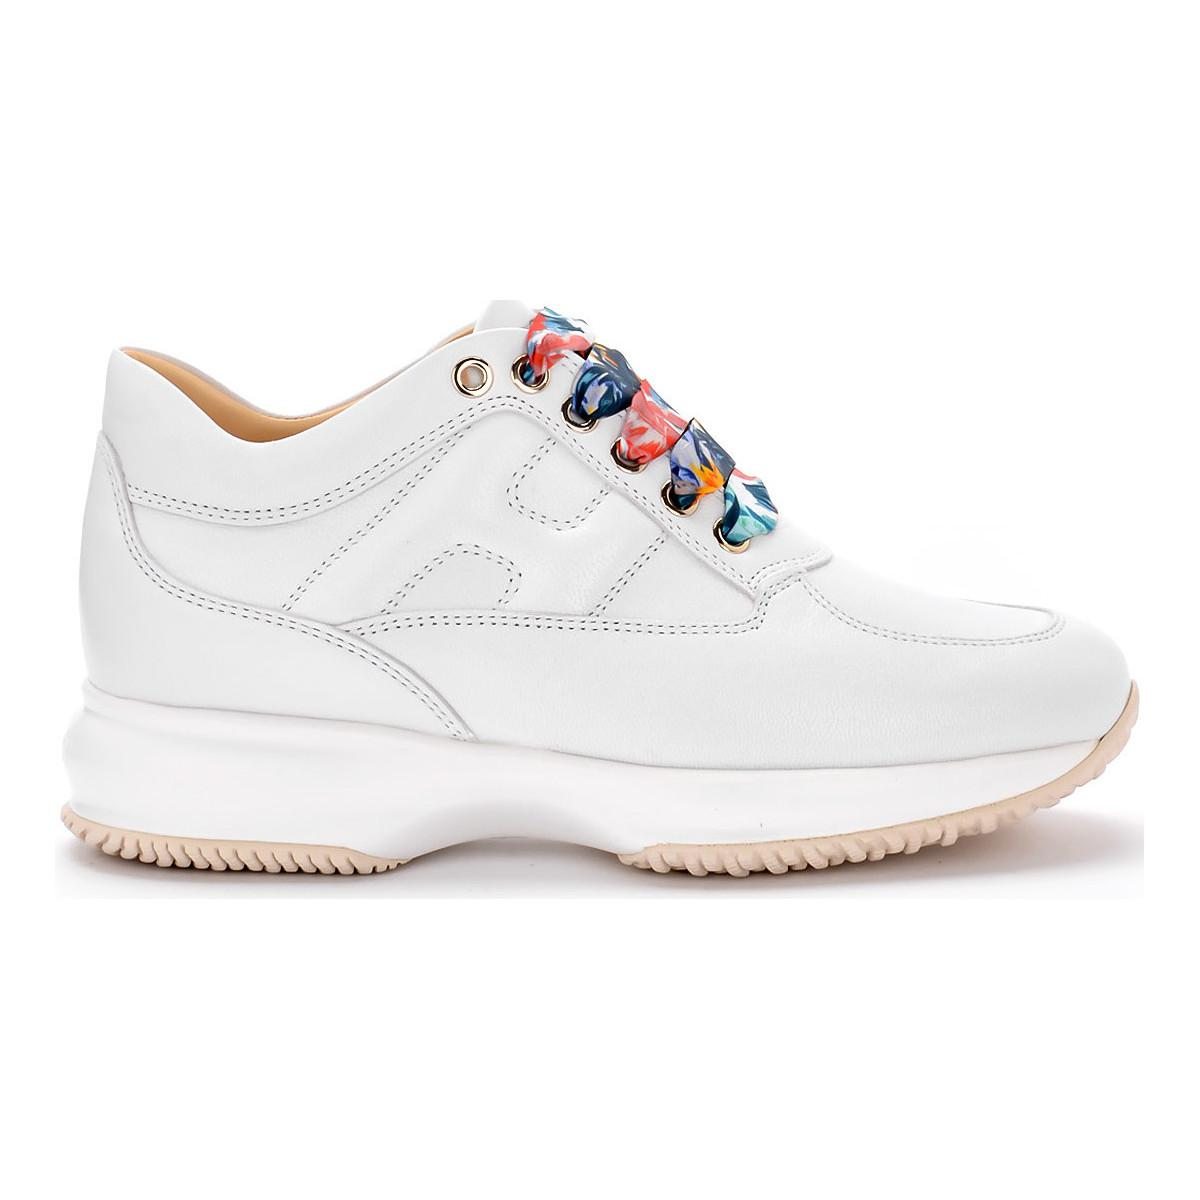 a28da6944e7 Tap to visit site. Hogan - Interactive Luxury White Refined Leather Sneaker  Women's Shoes (trainers) ...